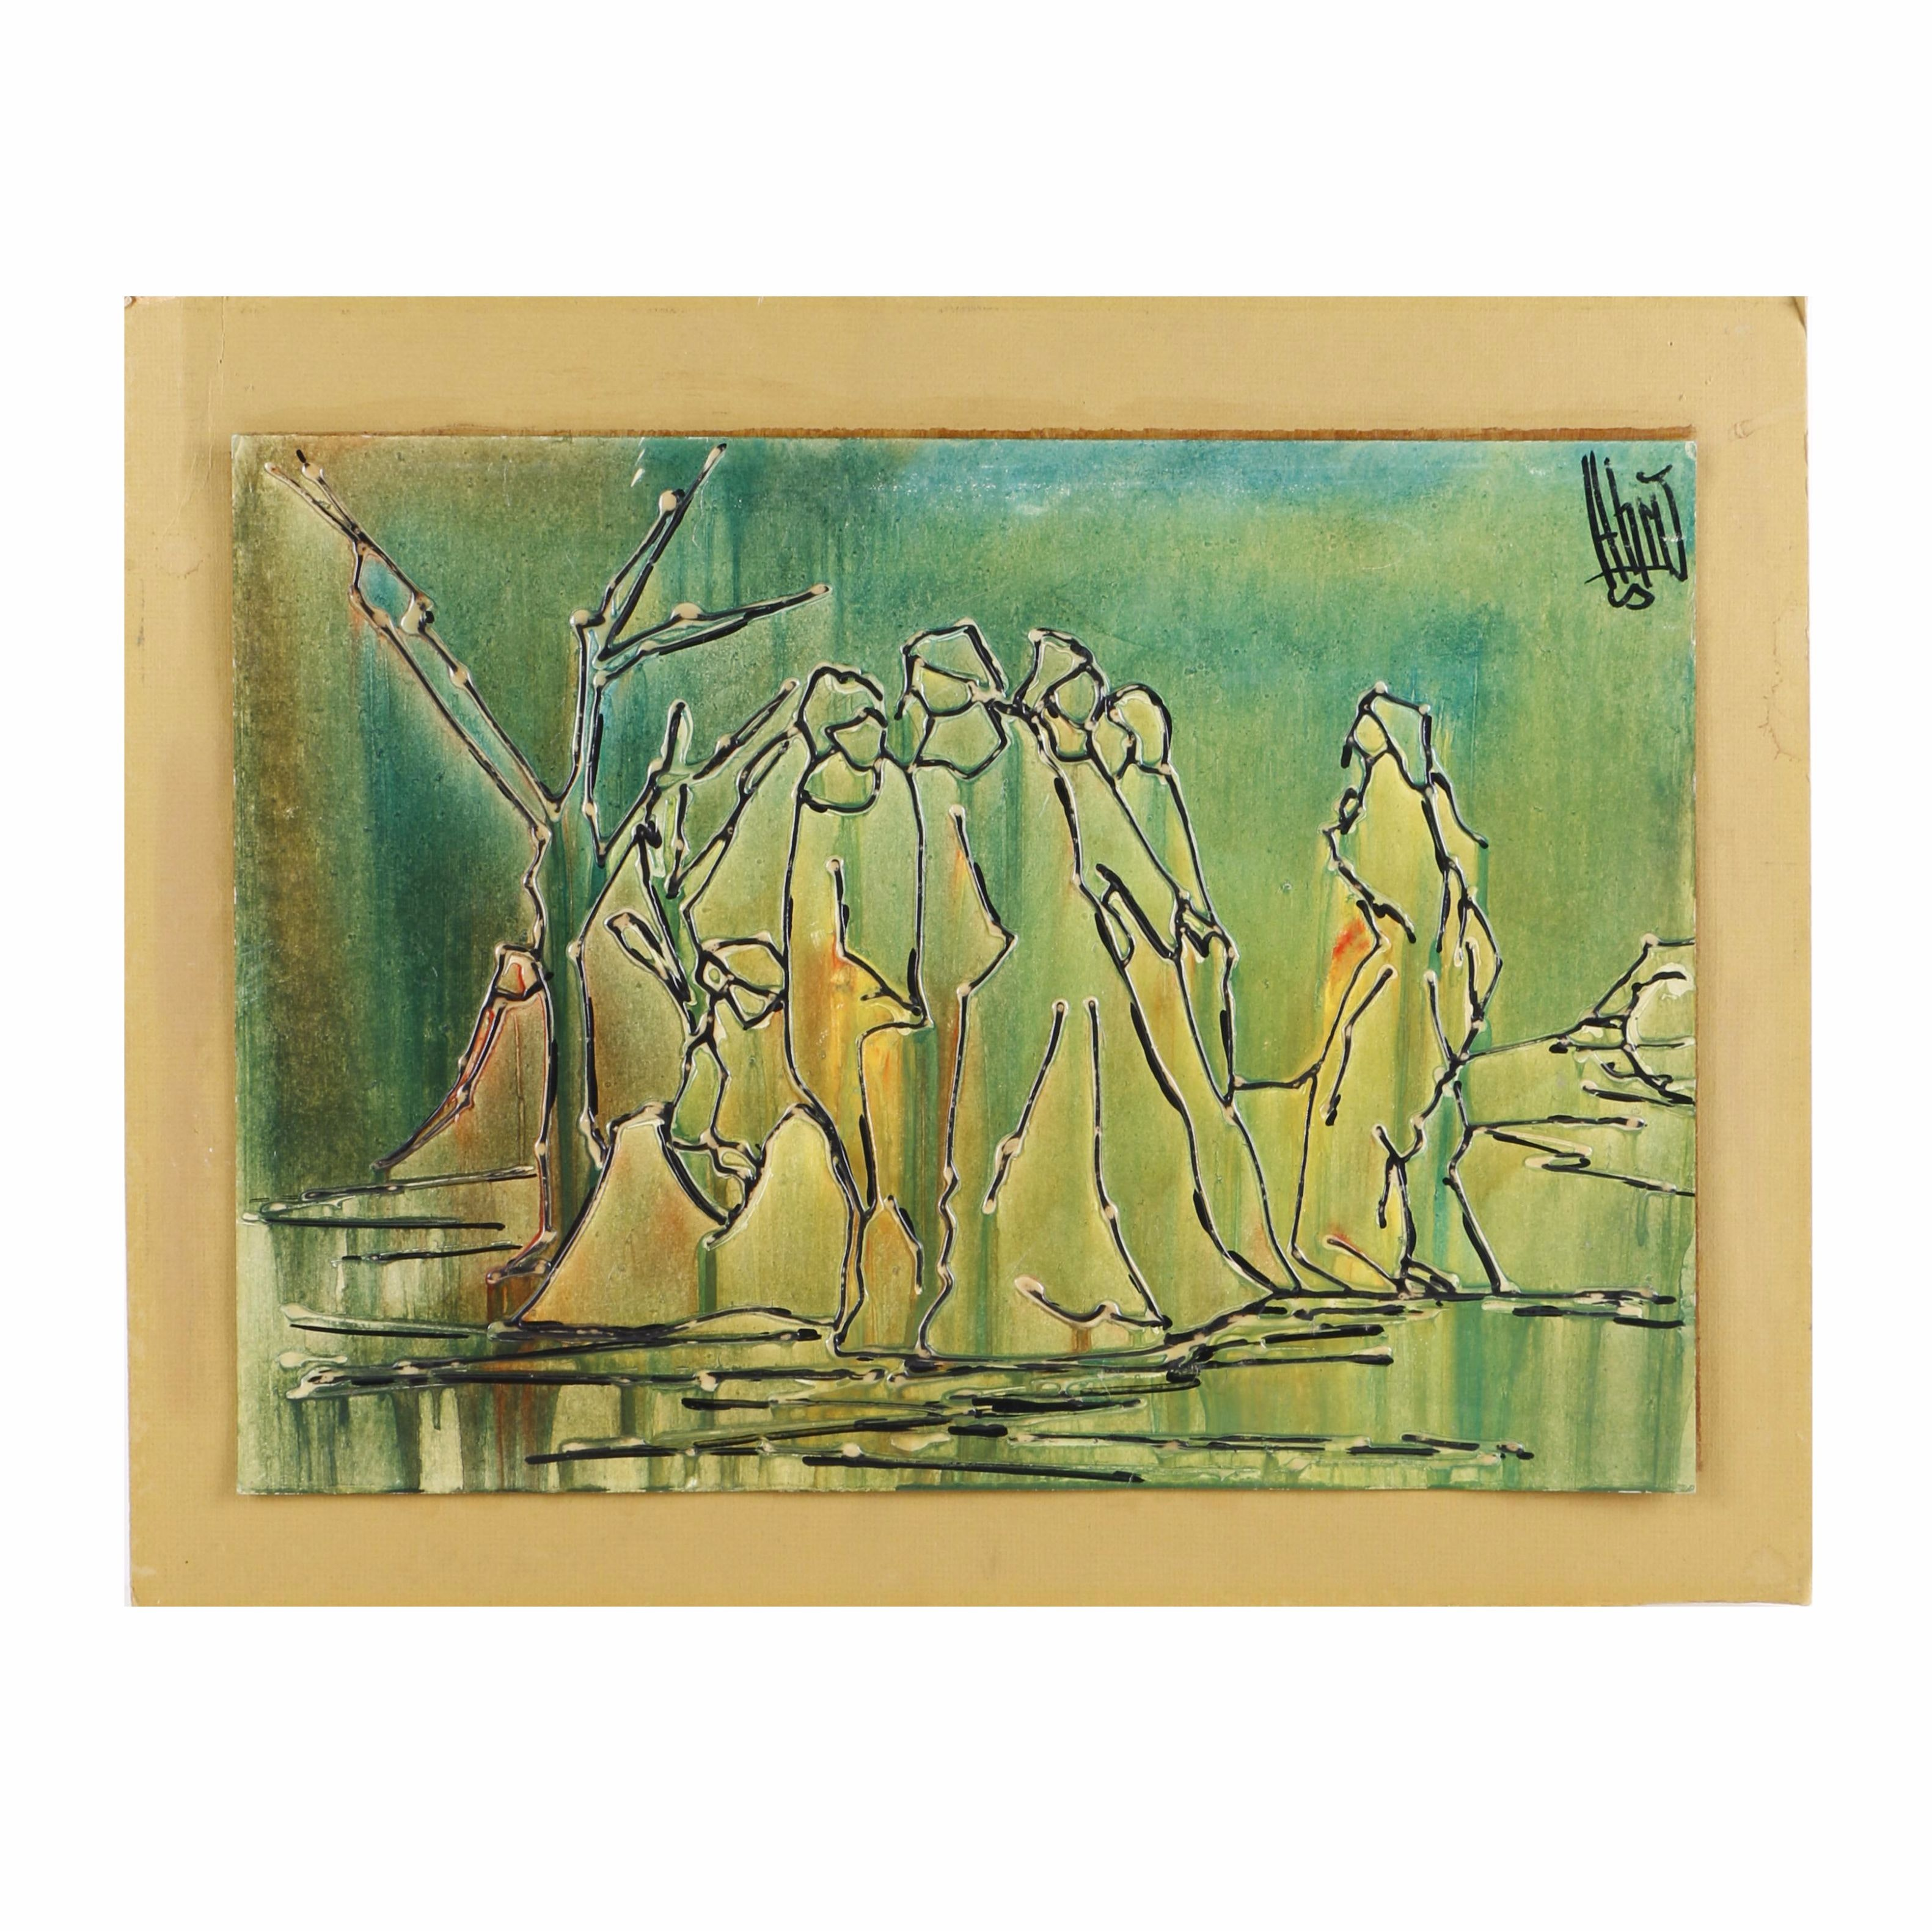 Mixed Media Painting on Paperboard of Abstract Figures